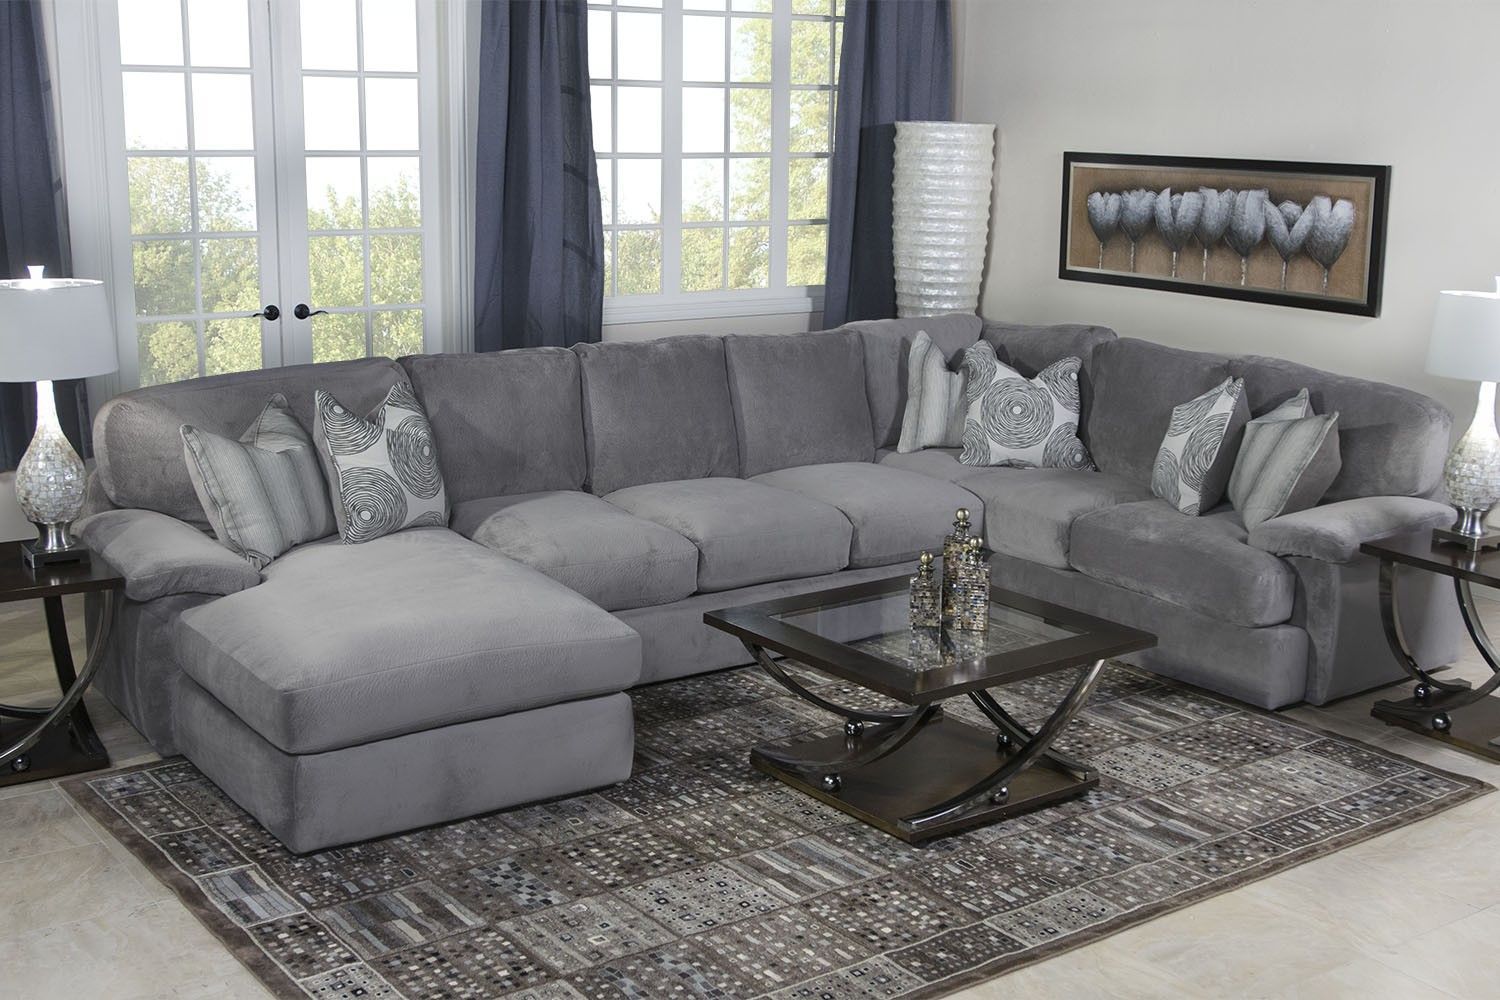 Key west sectional living room in gray living room mor for Apartment furniture sets